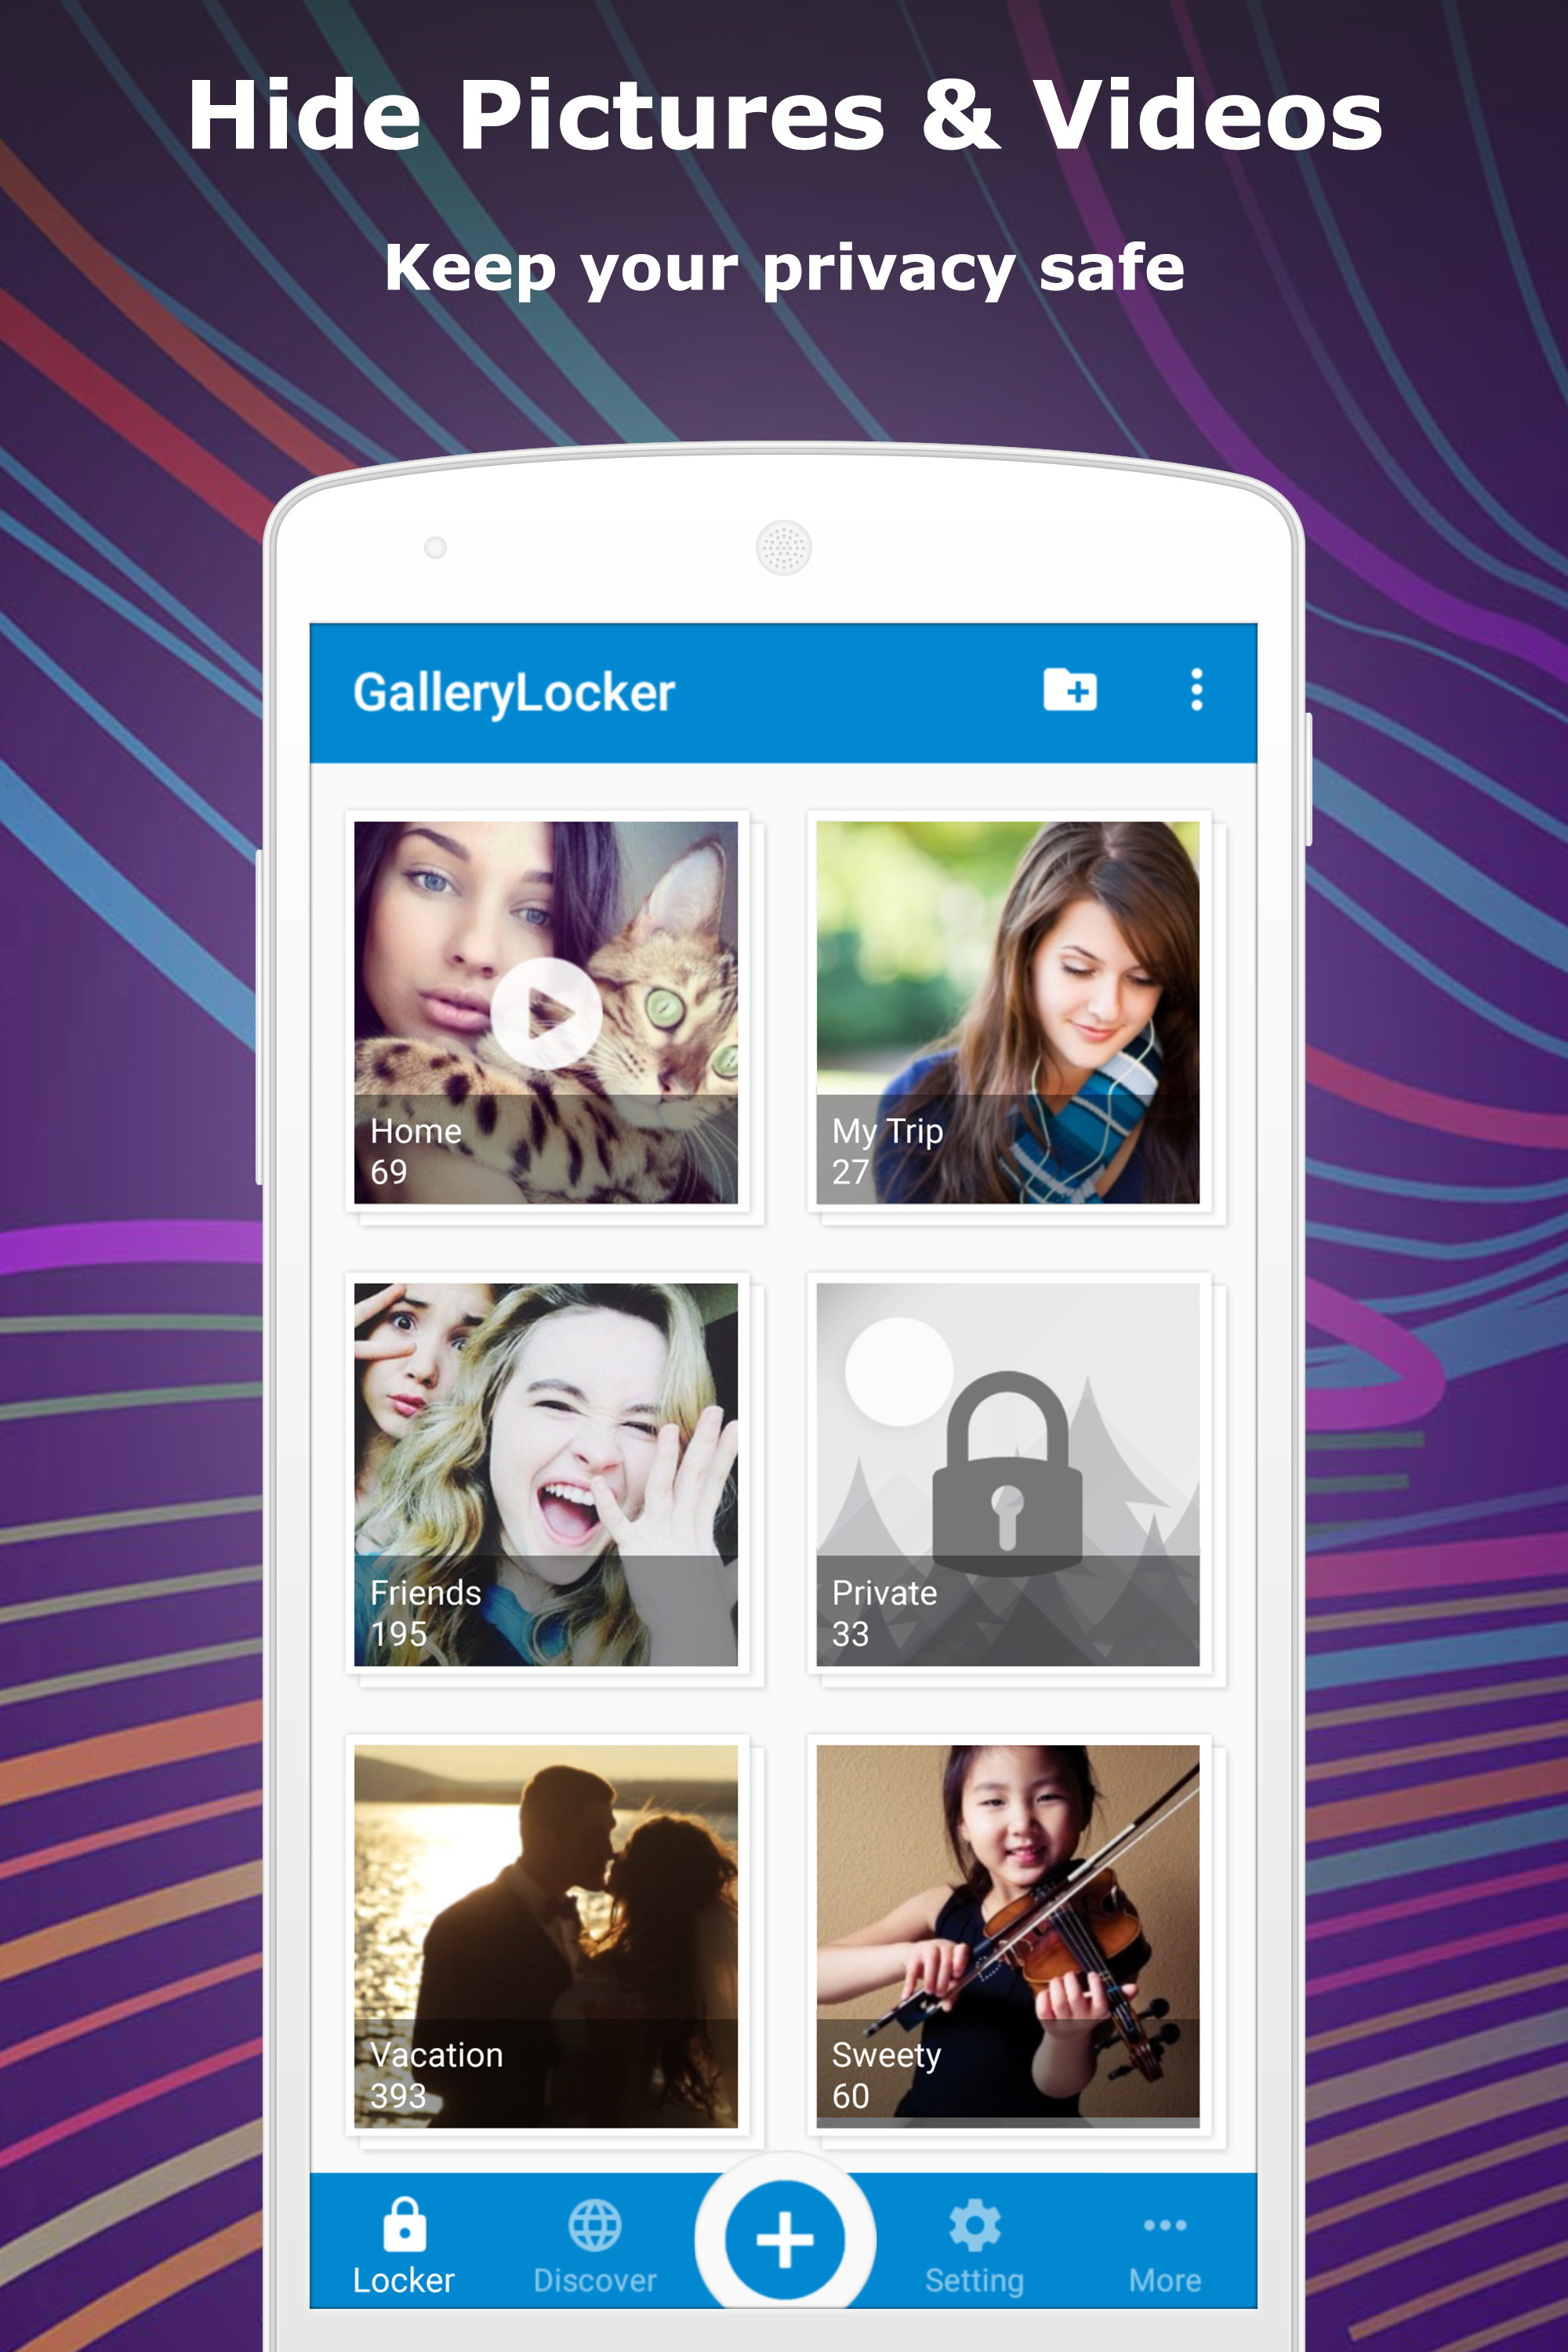 How to lock/hide/protect my files in Android Smartphone? | App3k